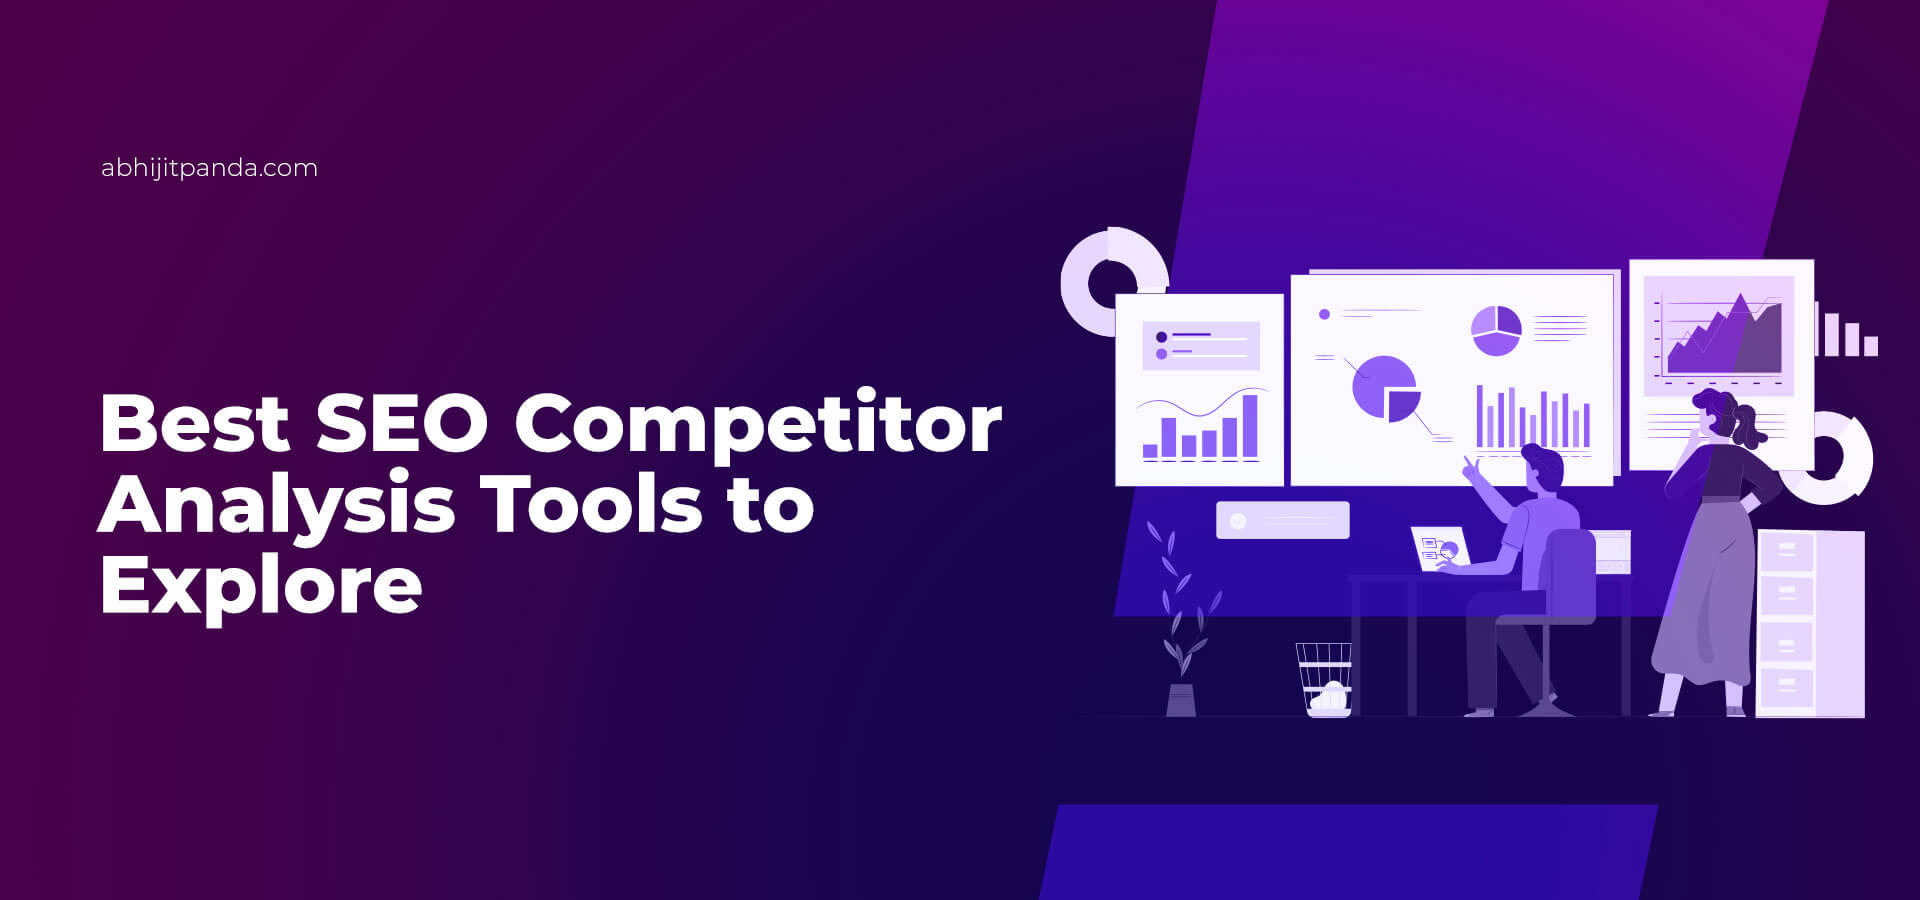 Best SEO Competitor Analysis Tools